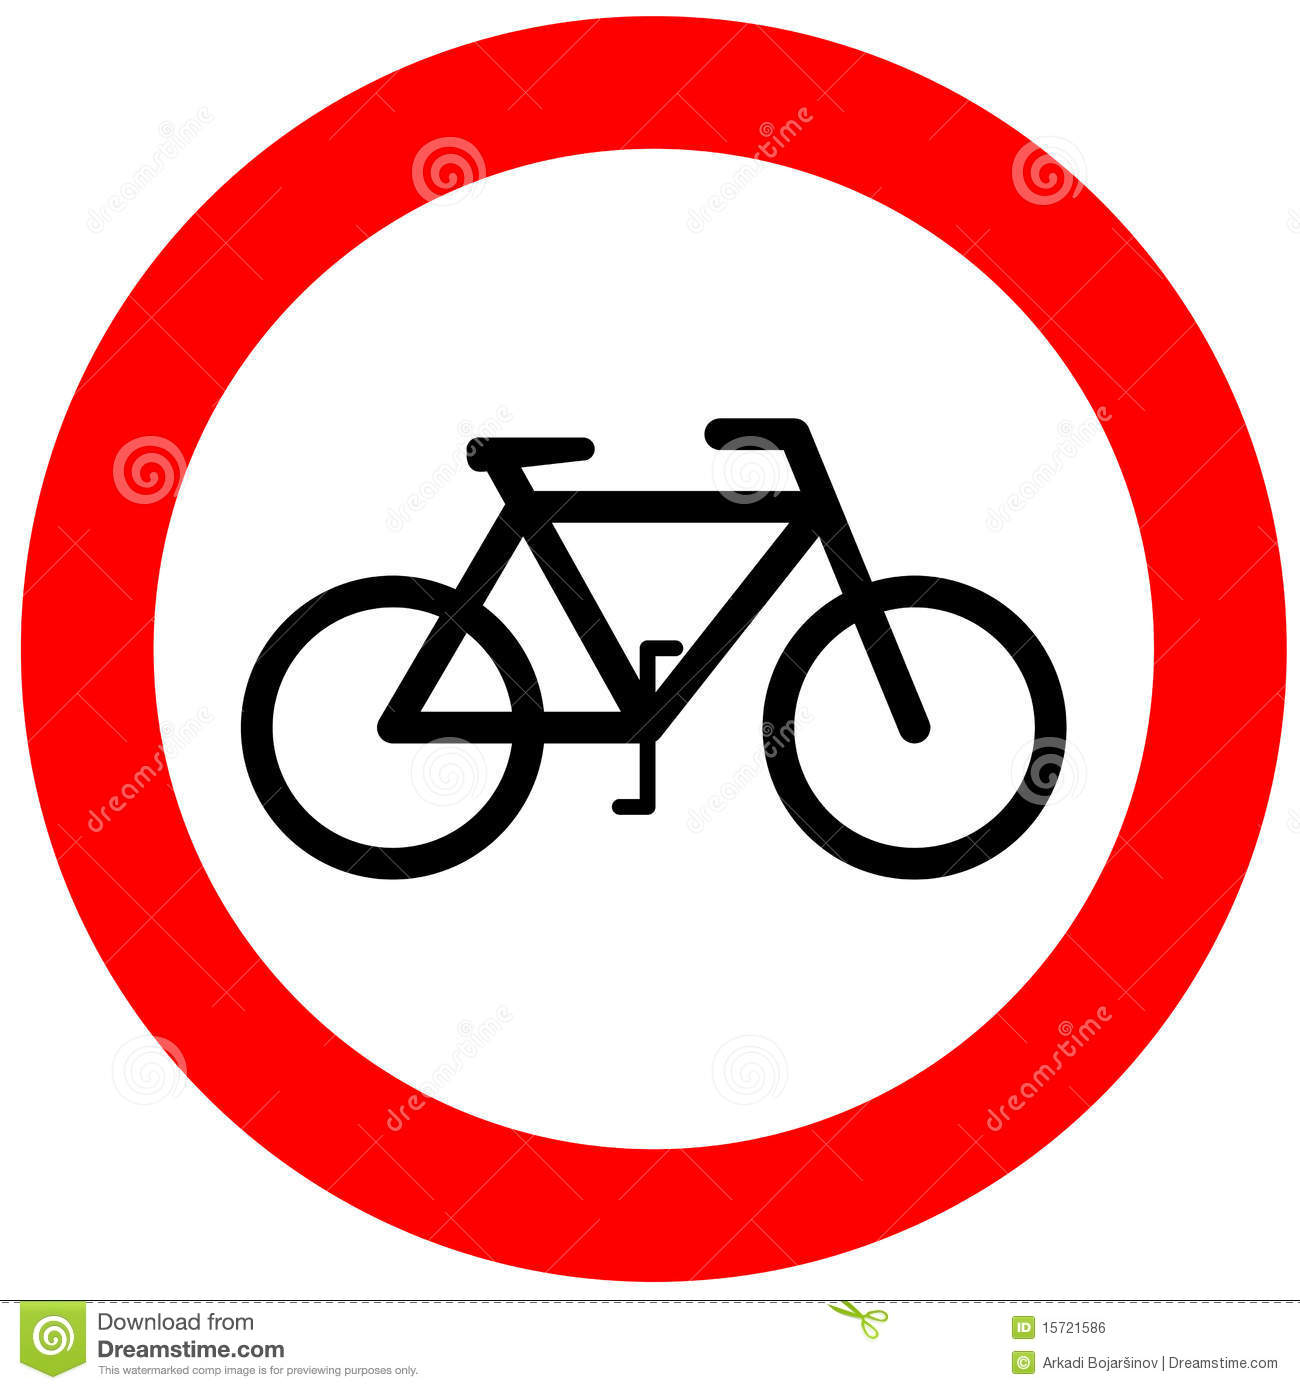 No Bicycle Sign Royalty Free Stock Image  Image 15721586. Ponitz Career Technology Center. Board Certified Laser Hair Removal. Transfer Balance Between Credit Cards. Post Graduate Certificate Lml Payment Systems. After Eye Lasik Surgery Chase Bank Norfolk Va. Definition Of Deductible Hartford Retirement. Universal Life Insurance Online Quote. Software Project Management Training